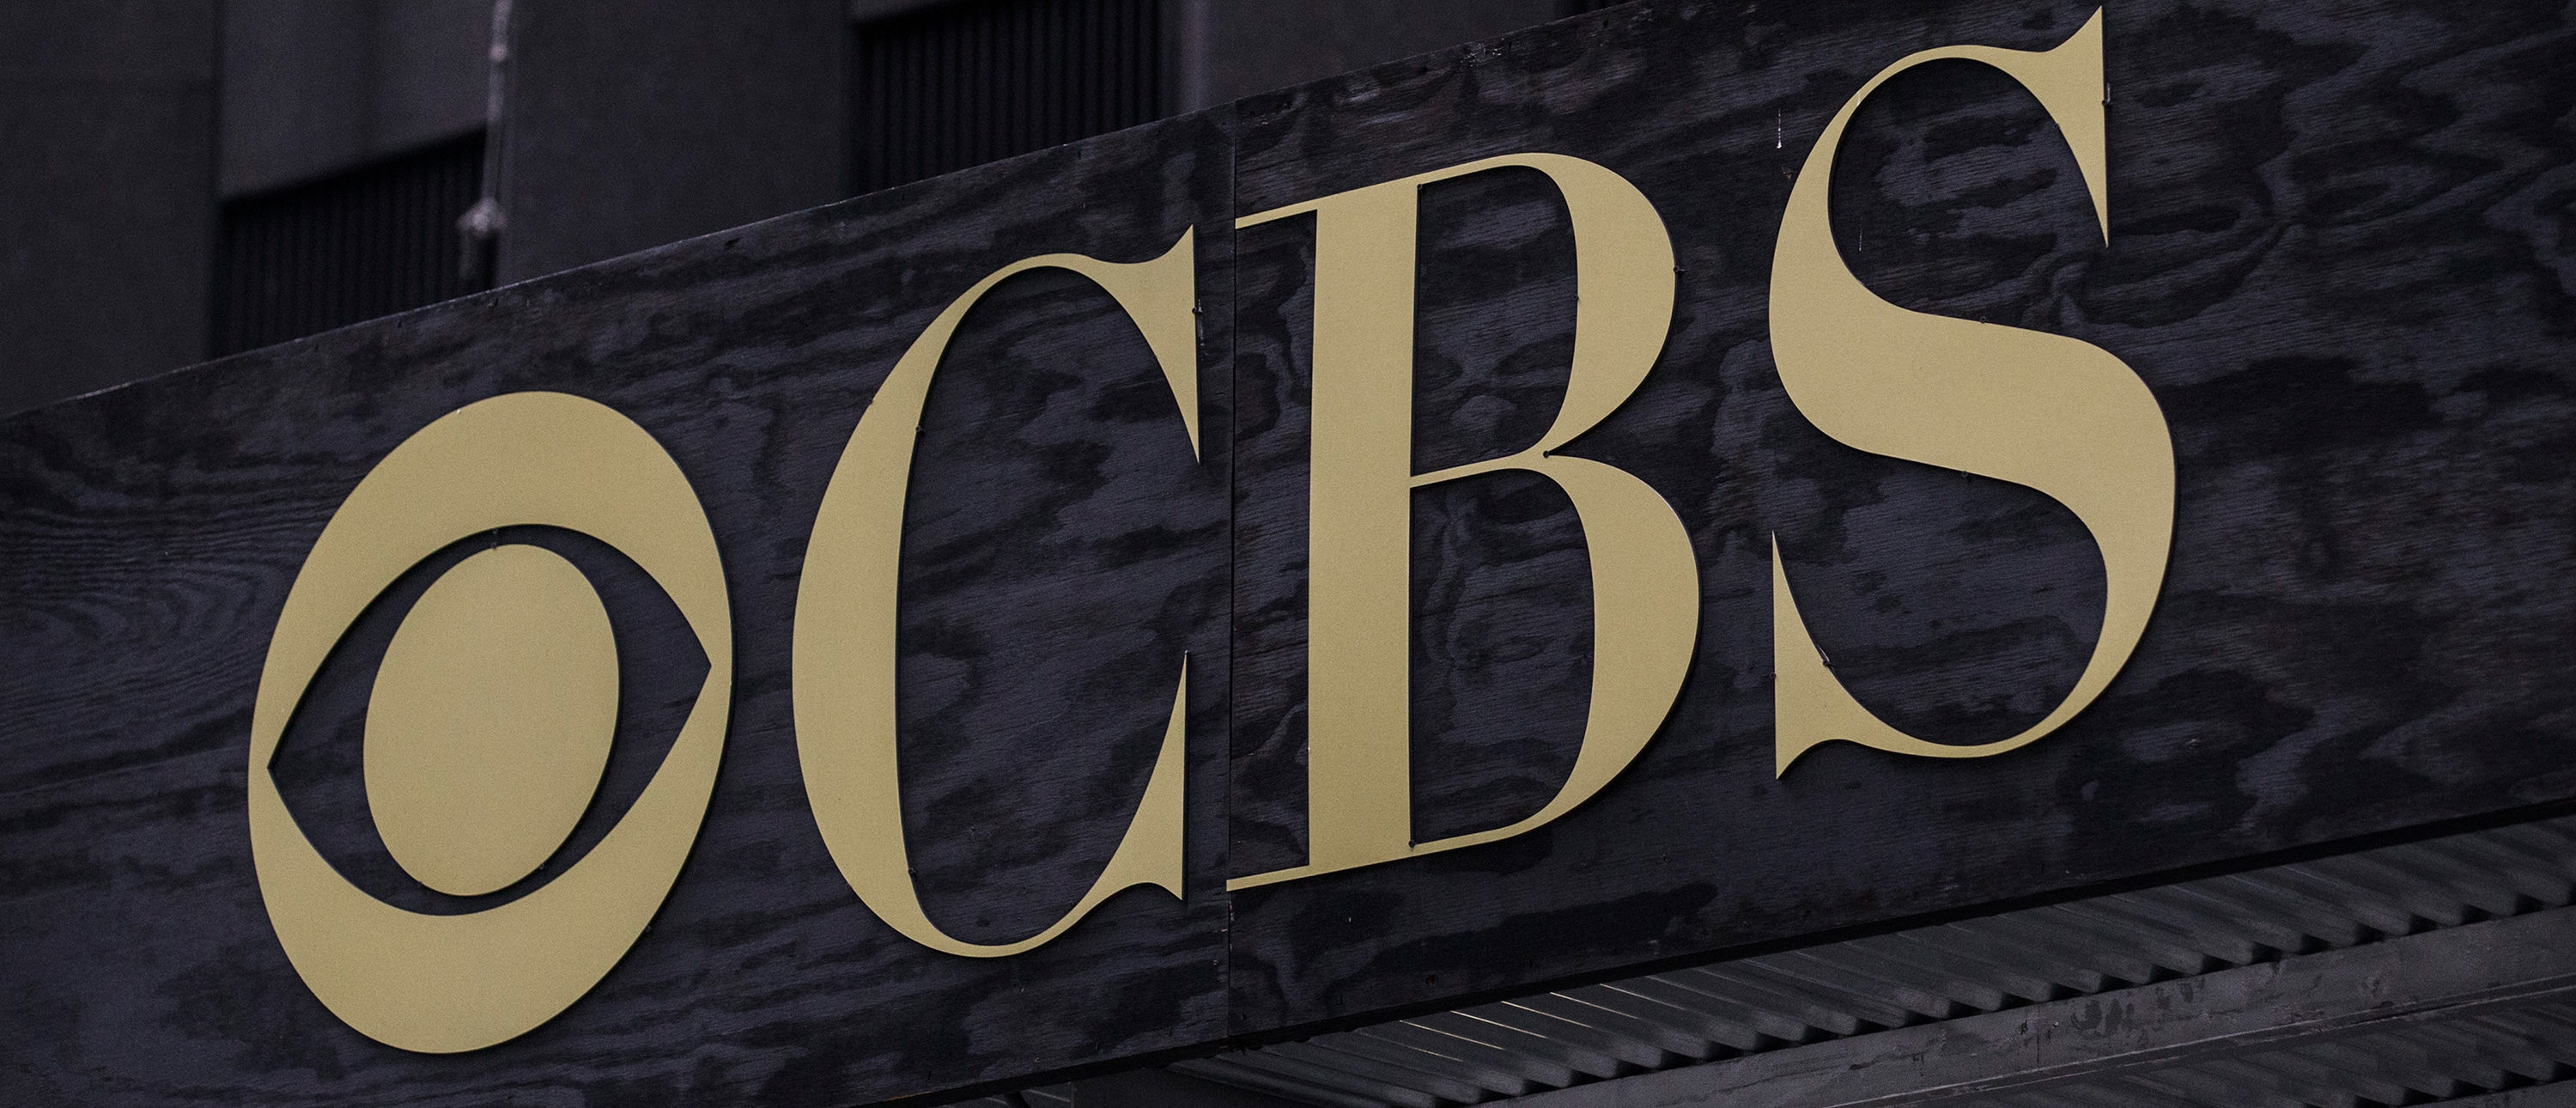 NEW YORK, NY - AUGUST 02:  The CBS headquarters seen on August 2, 2013 in New York City. Time Warner Cable dropped CBS in three major markets- New York, Los Angeles and Dallas - today, after negotiations fell through.  (Photo by Andrew Burton/Getty Images)